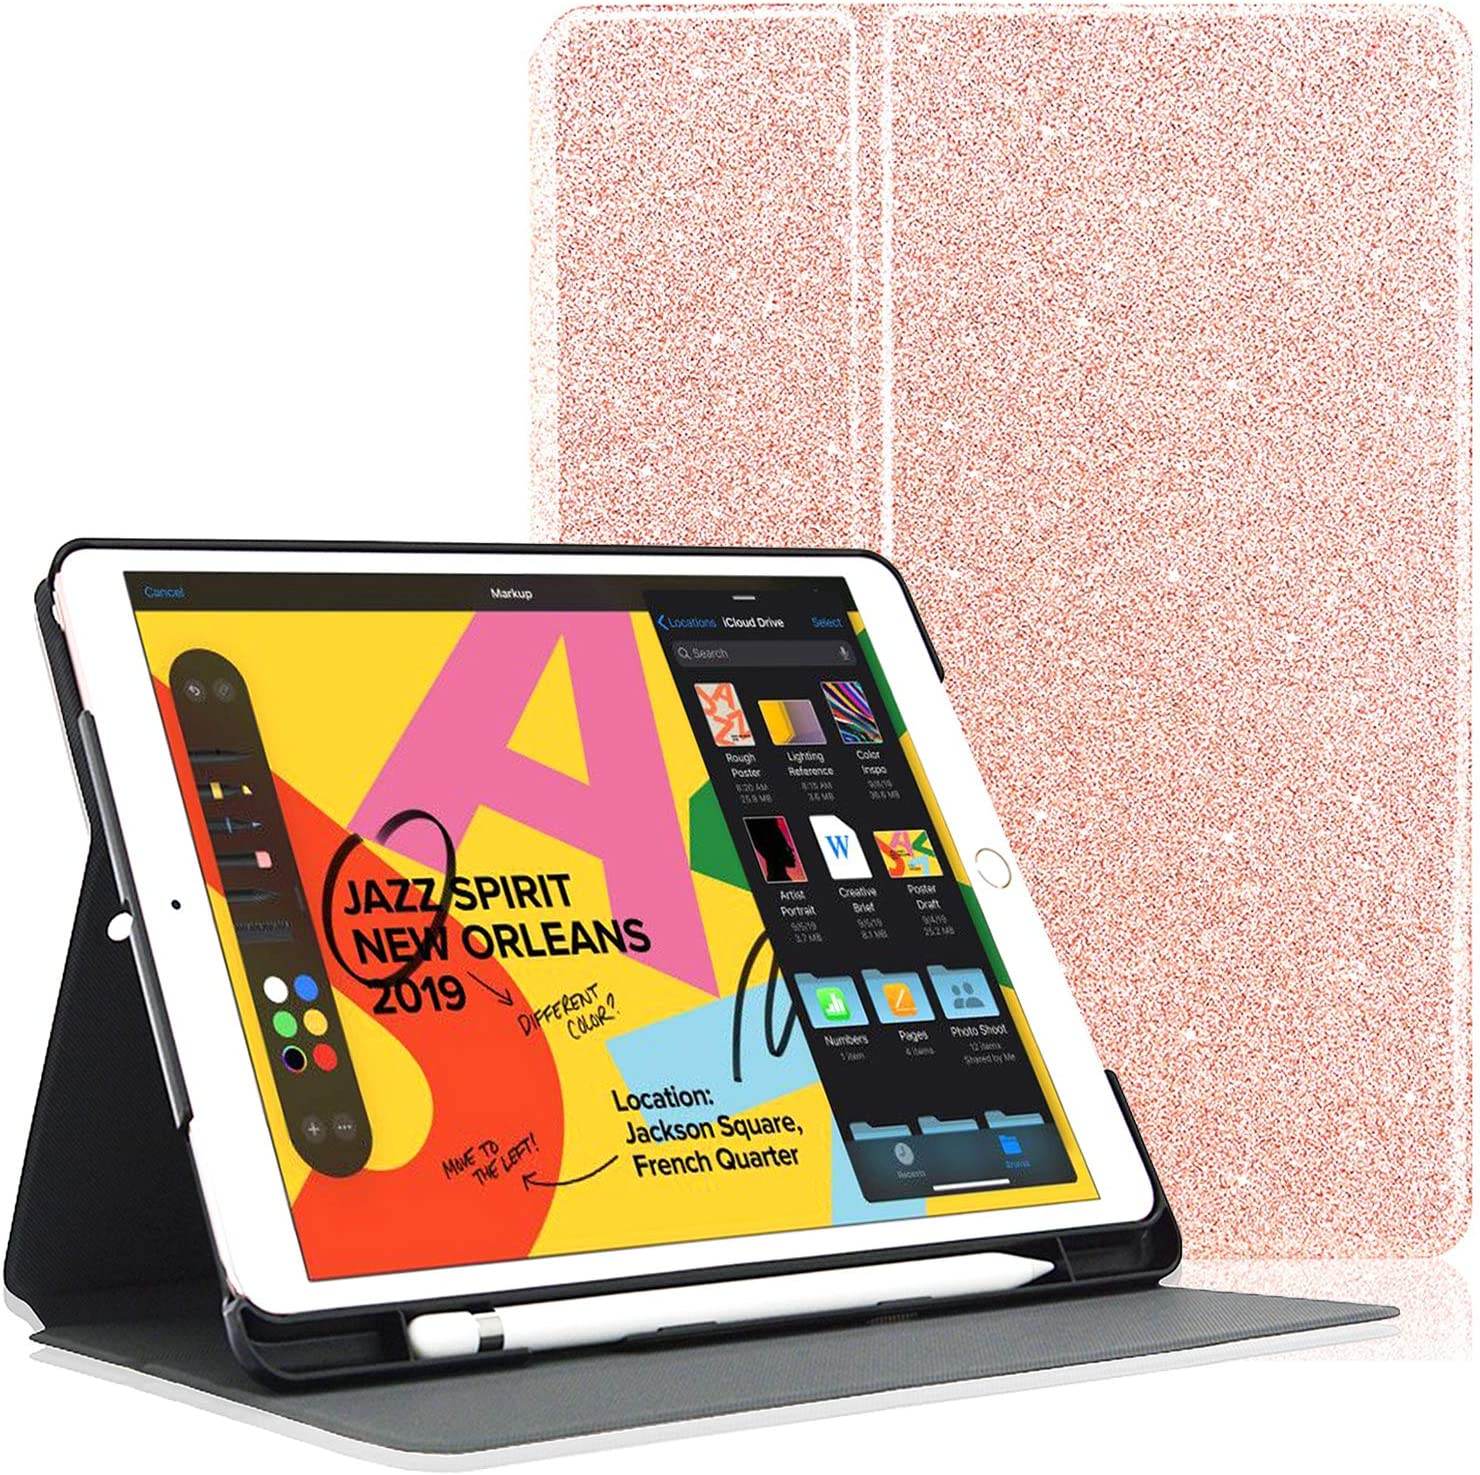 ACdream Case for New iPad 8th Gen 2020 / 7th Generation 2019 10.2 Inch with Pencil Holder, Premium PU Leather Cover with Auto Wake Sleep Feature for iPad Air 3 / iPad Pro 10.5, Glitter Rose Gold